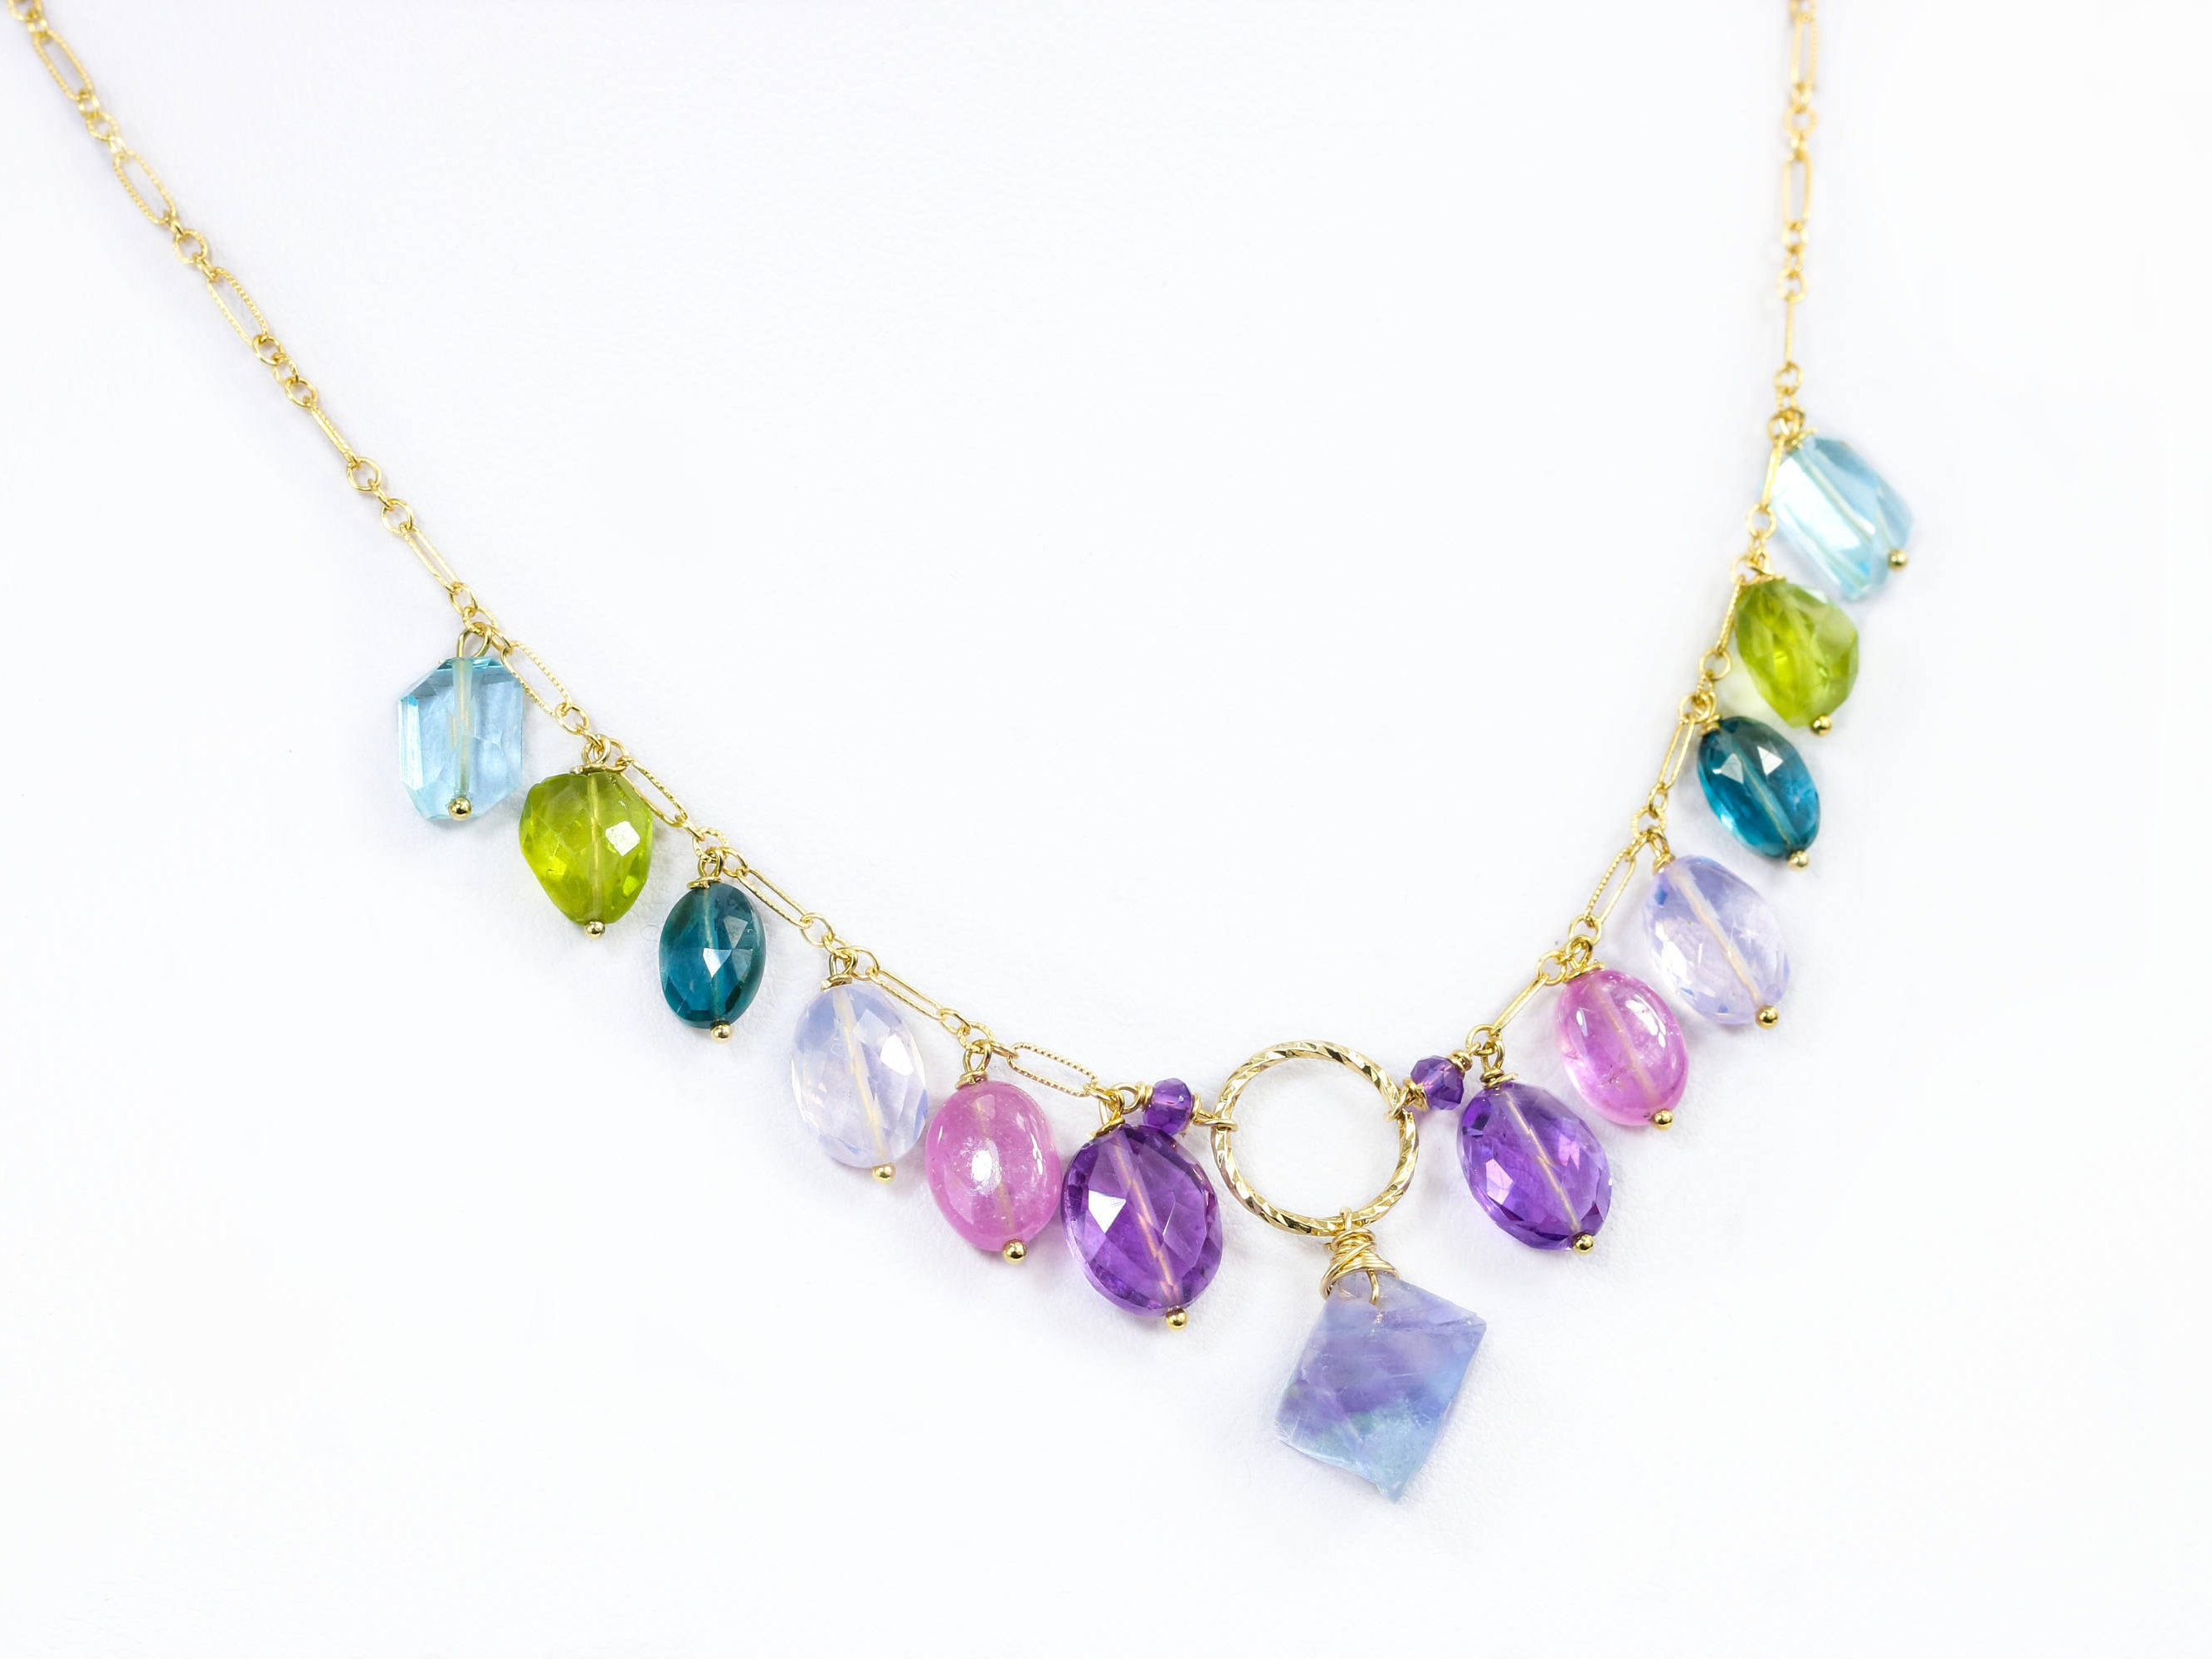 gemstone born chain starry pendant sky review fashion from necklace moon product pretty